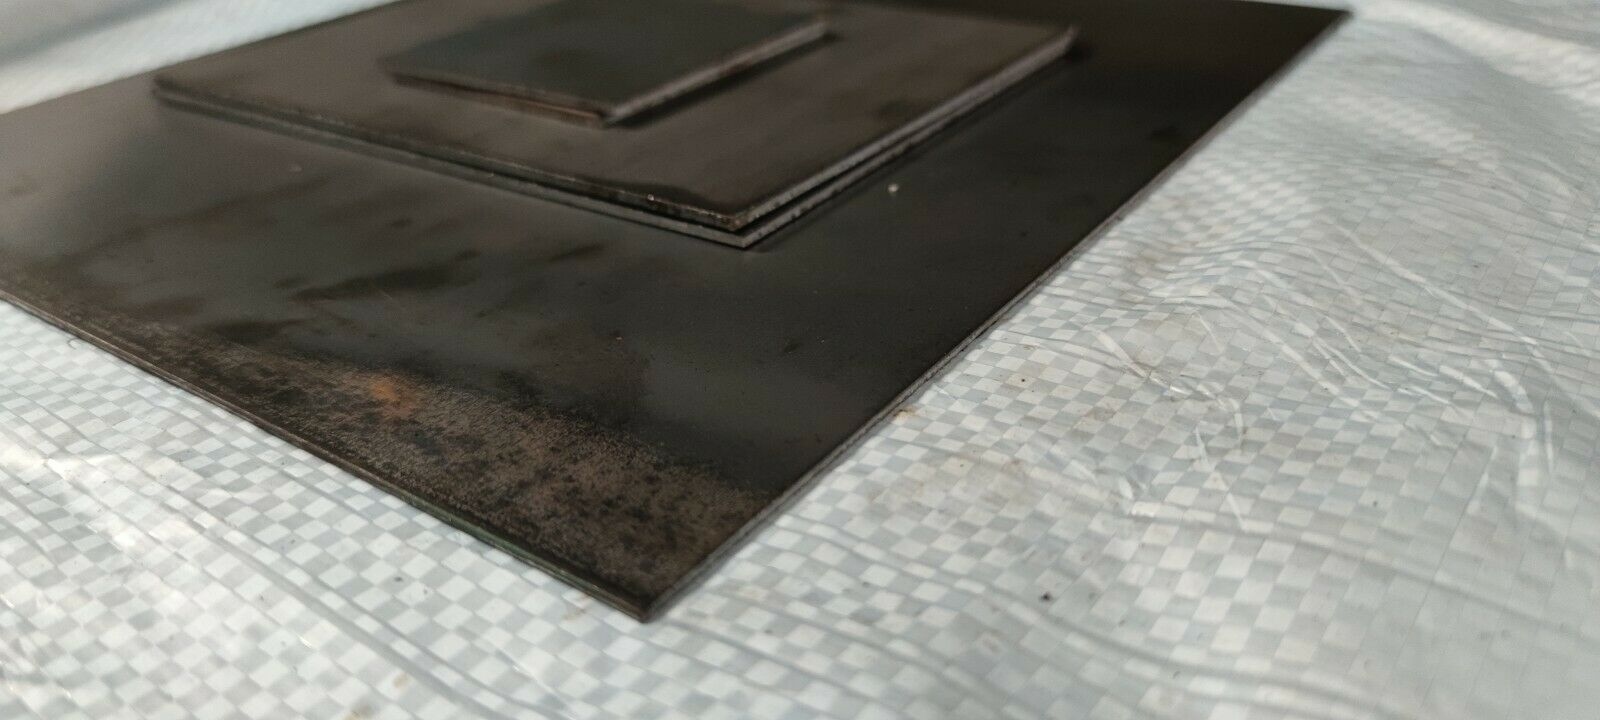 Budget MILD STEEL SHEET 1mm 2mm 3mm Thick UK Guillotine Cut New Metal Plate